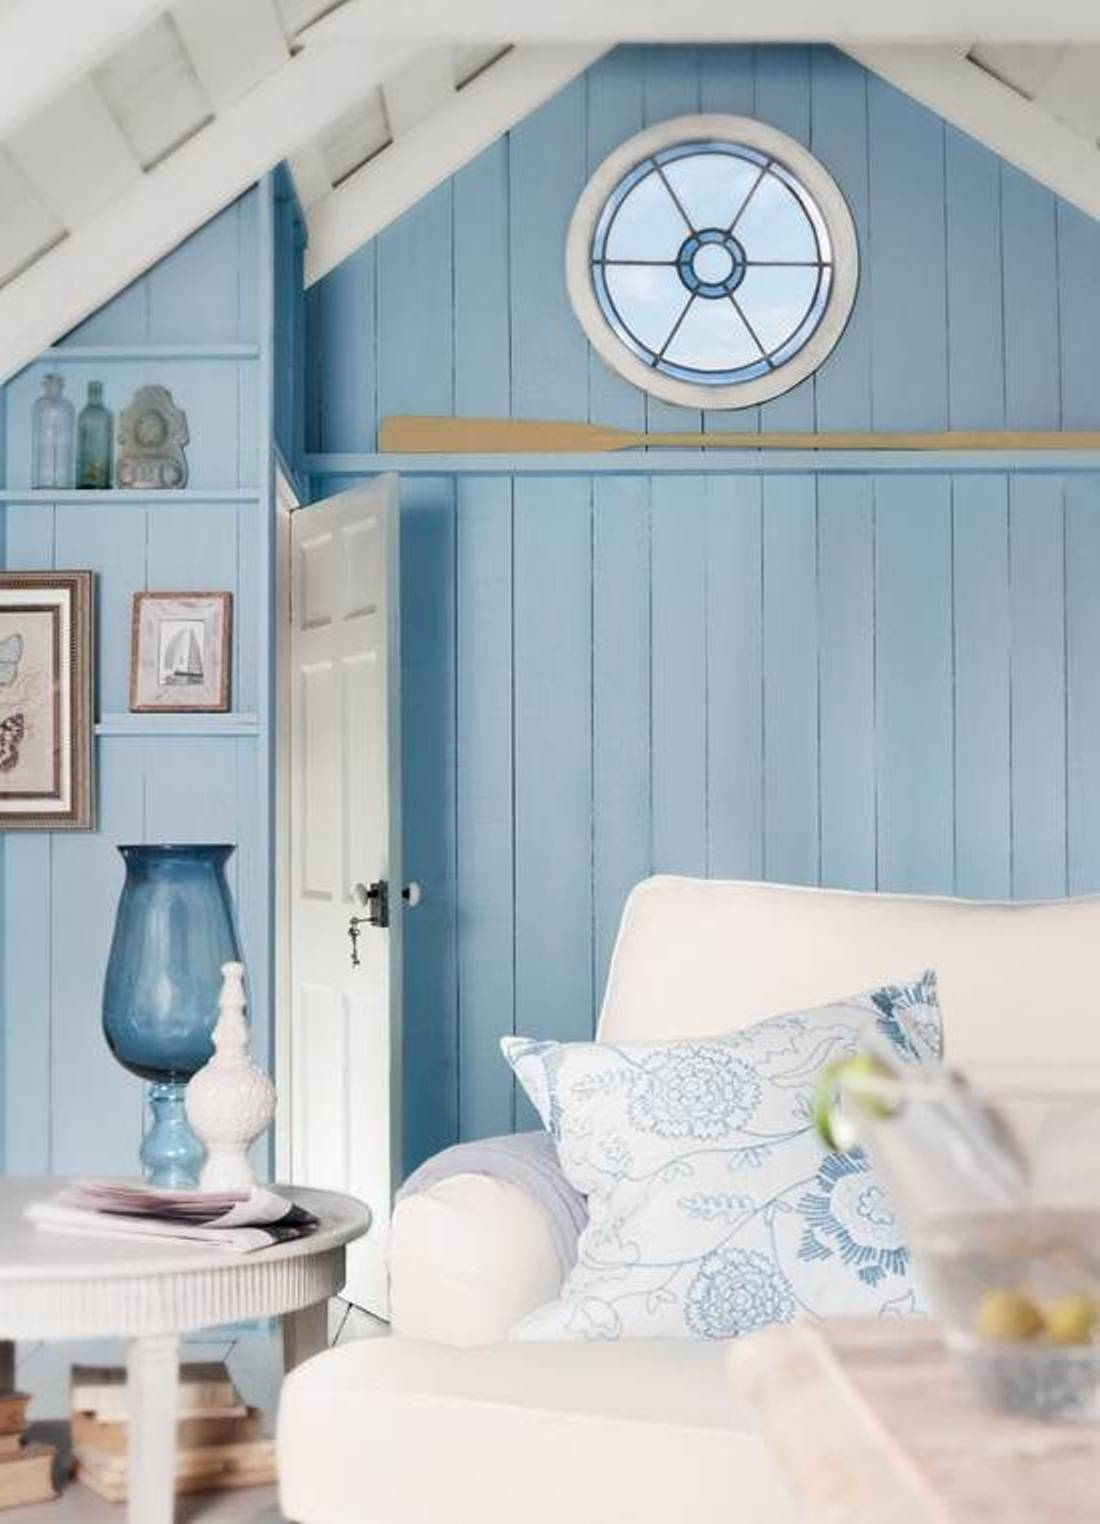 Beach Cottage Wall Decor Ideas With Regard To Current Beach Cottage Wall Decors (View 4 of 25)